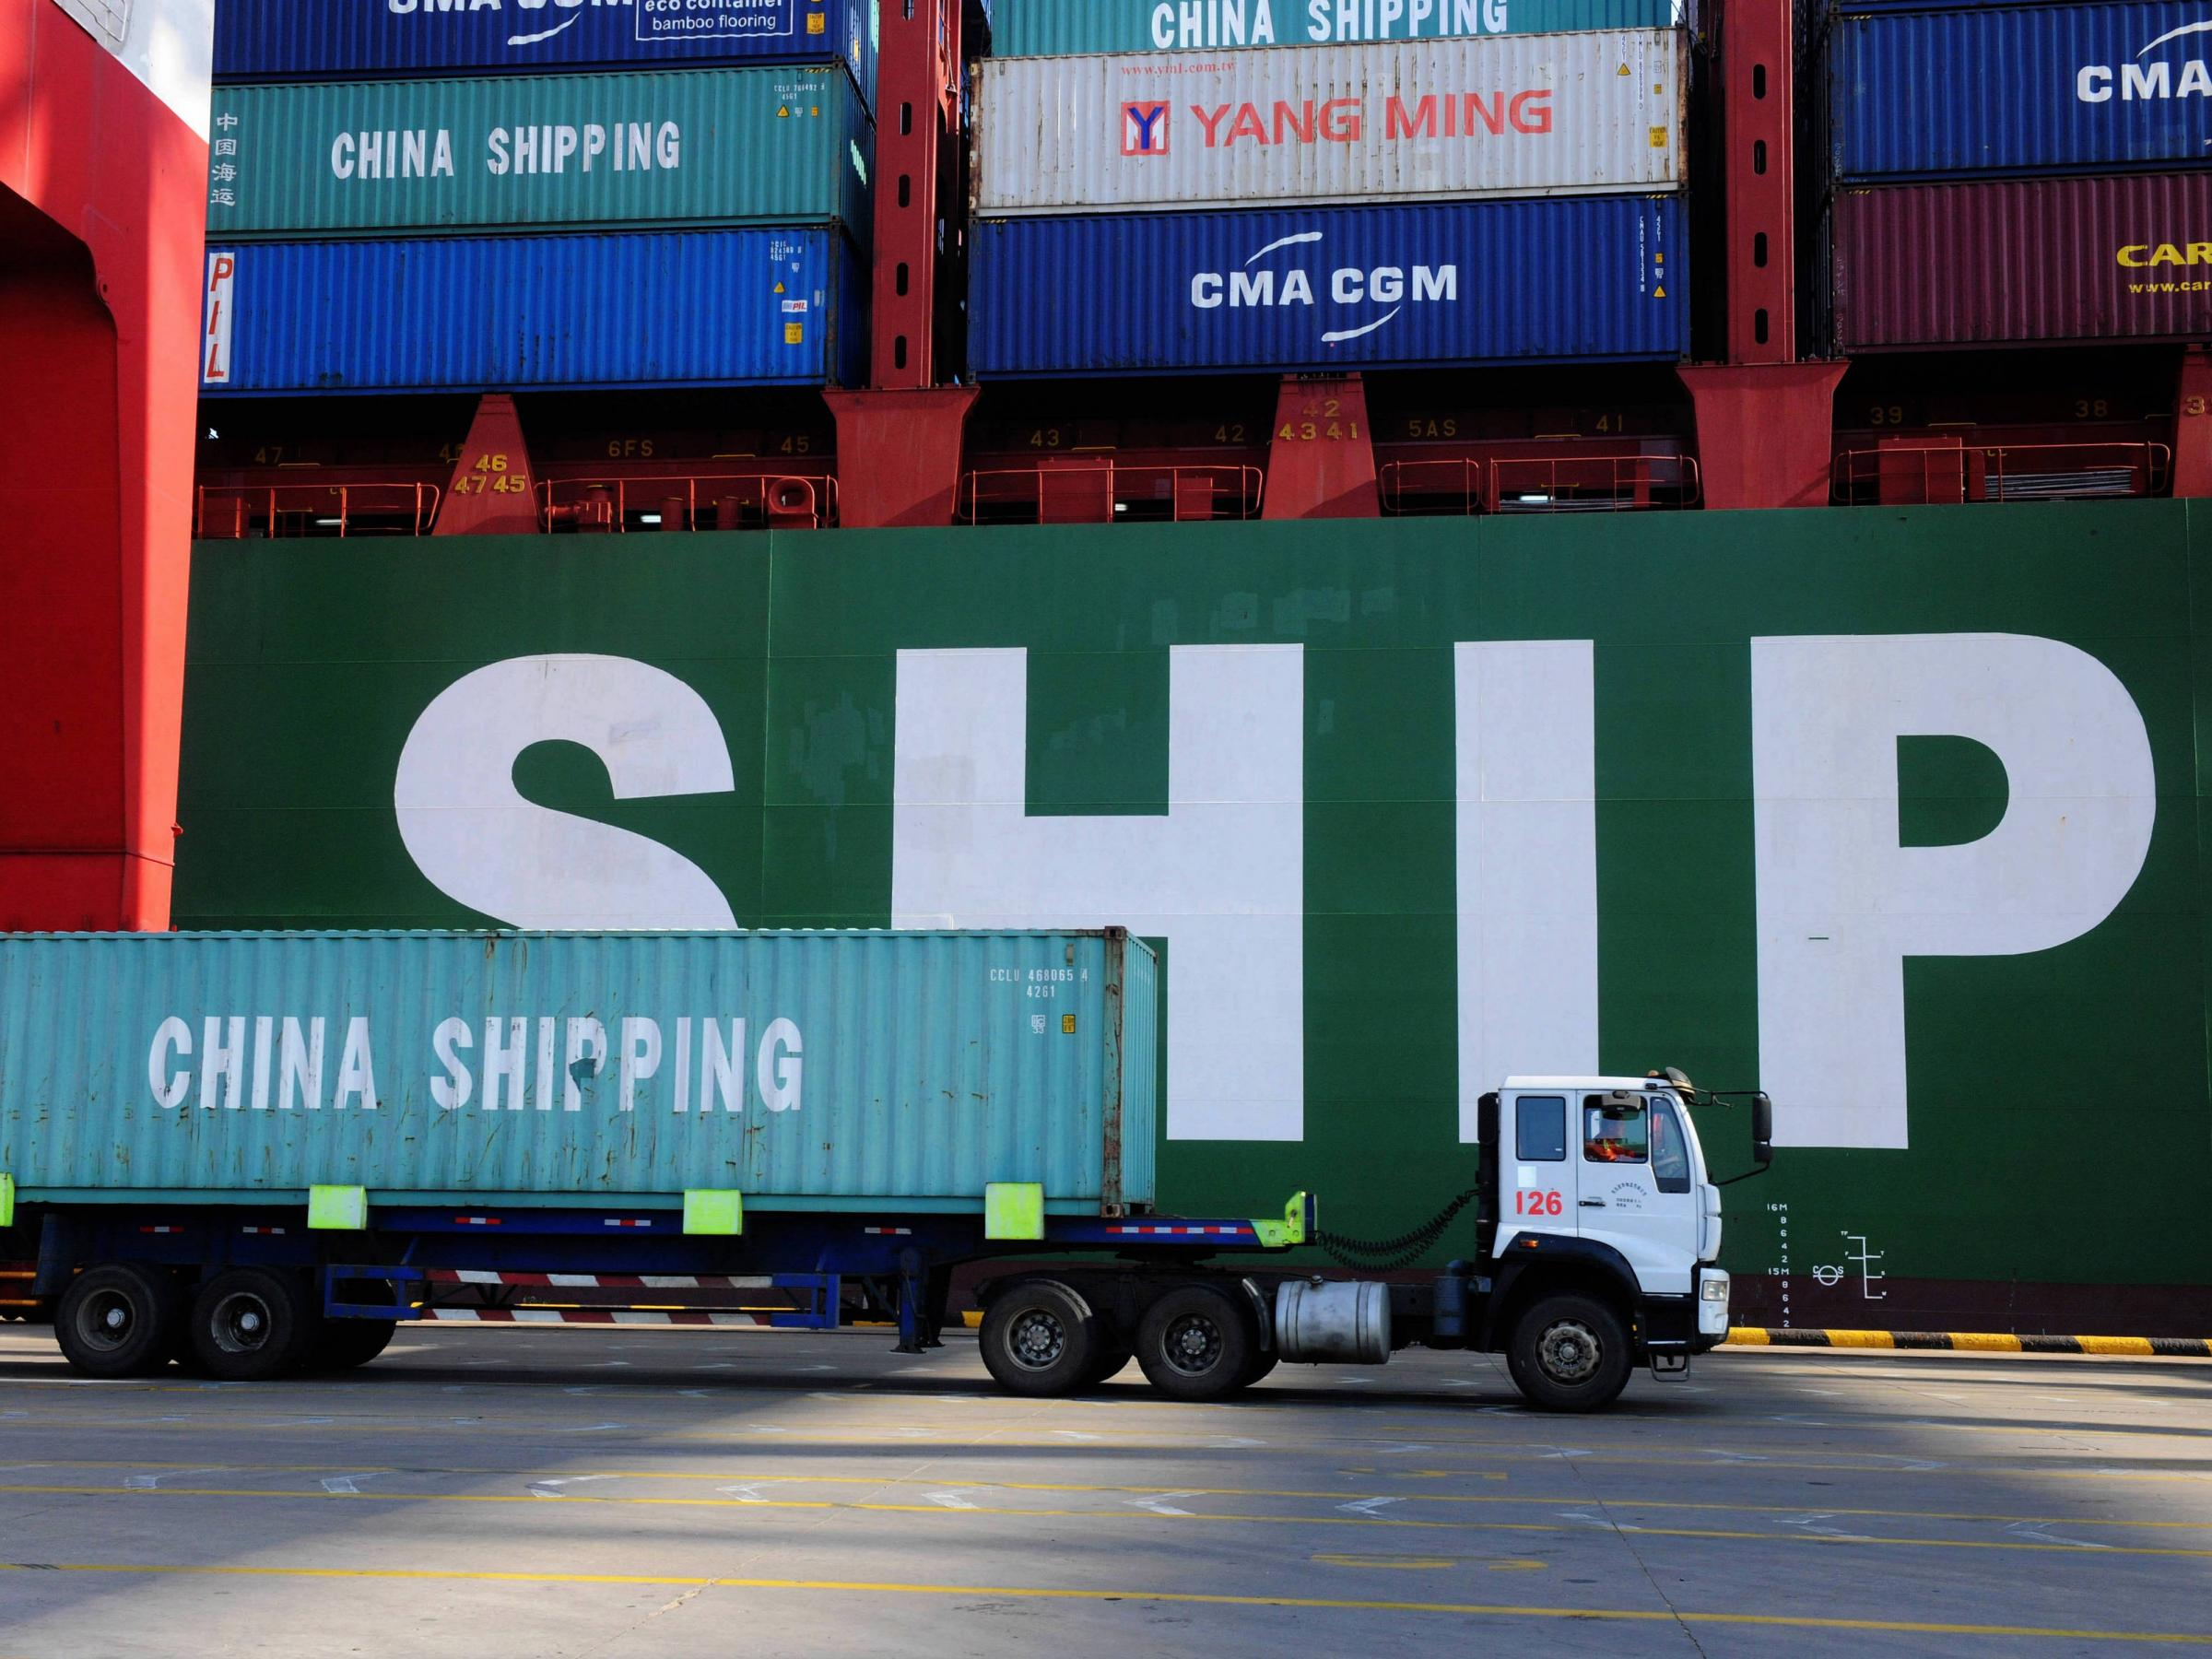 the shipping industry Shipping industry introduction shipping industry, the industry devoted to moving goods or passengers by water passenger operations have been a major component of.